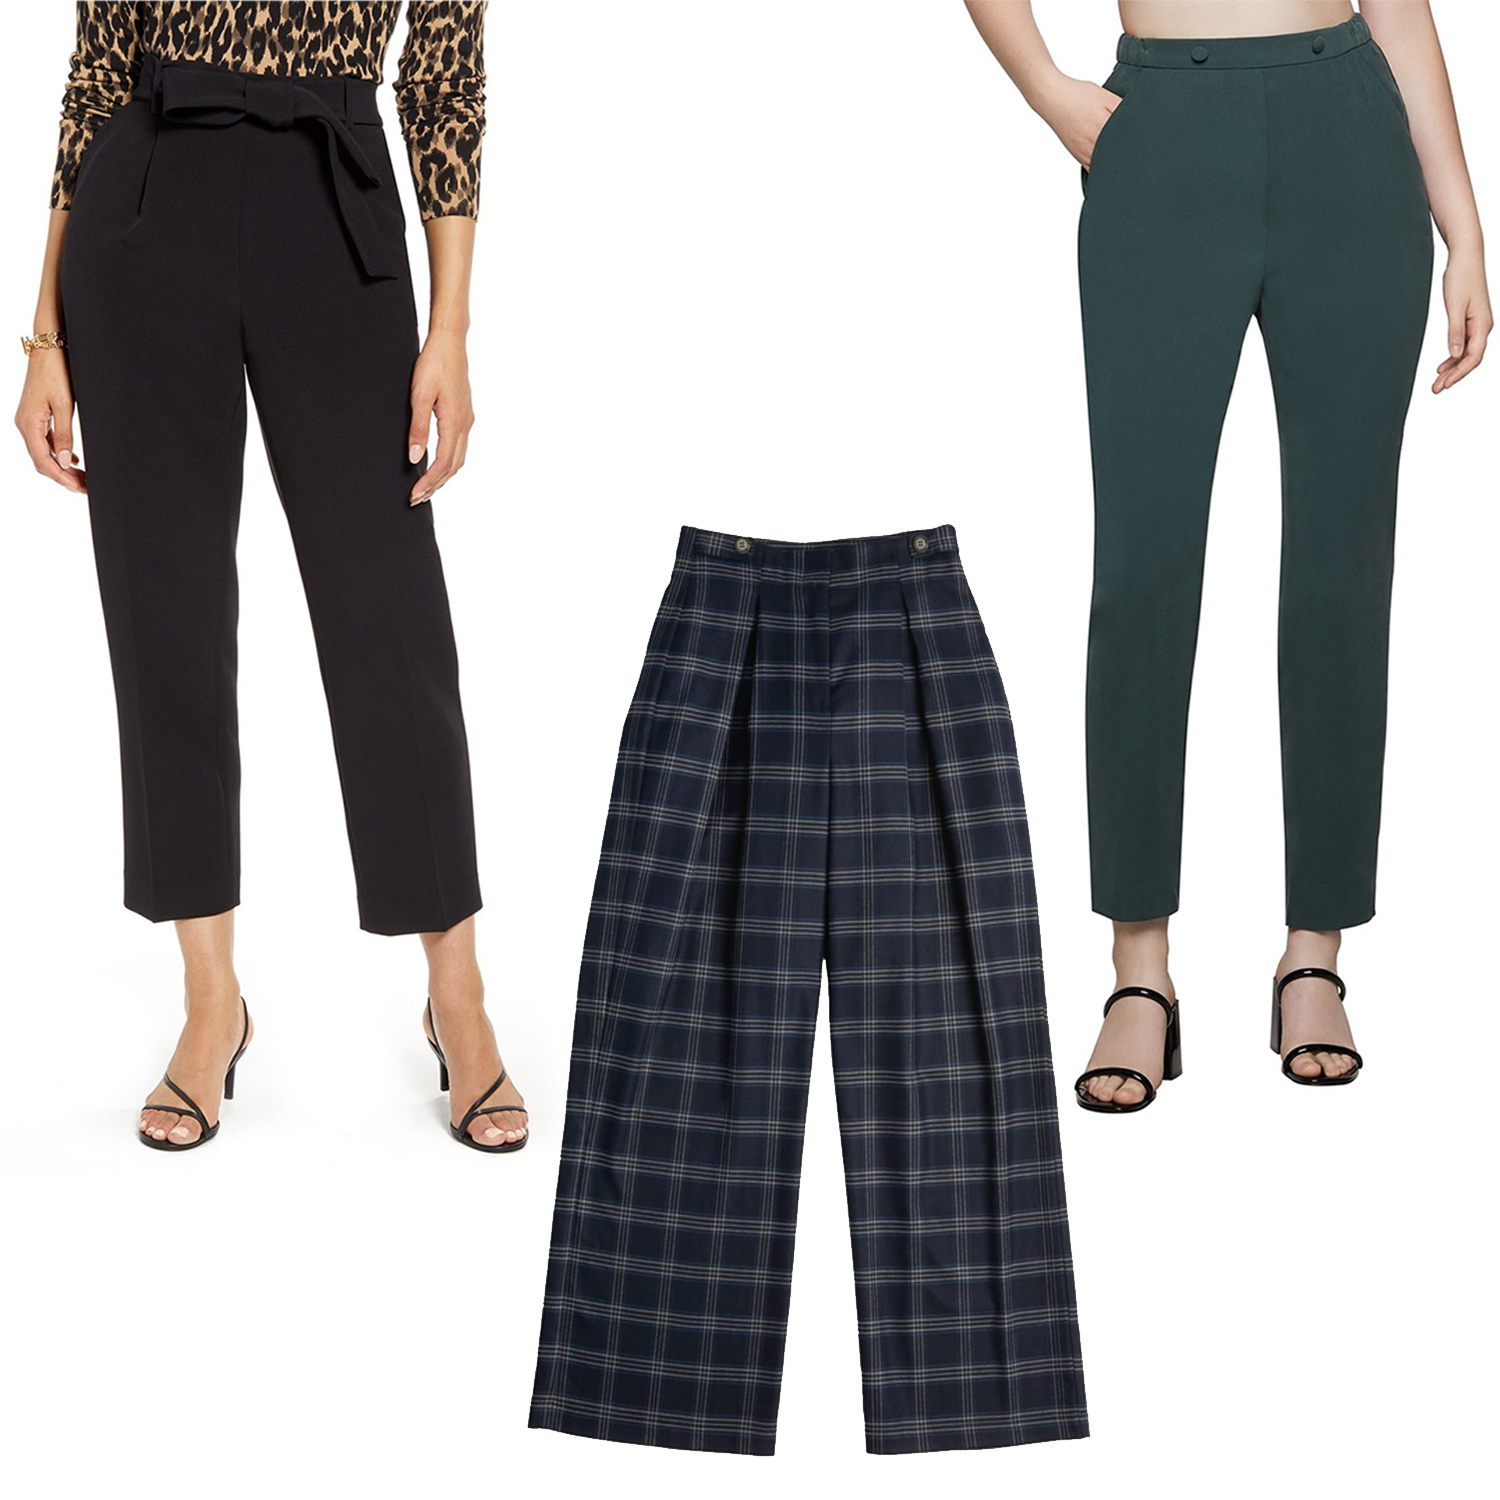 Nordstrom Pants Collages